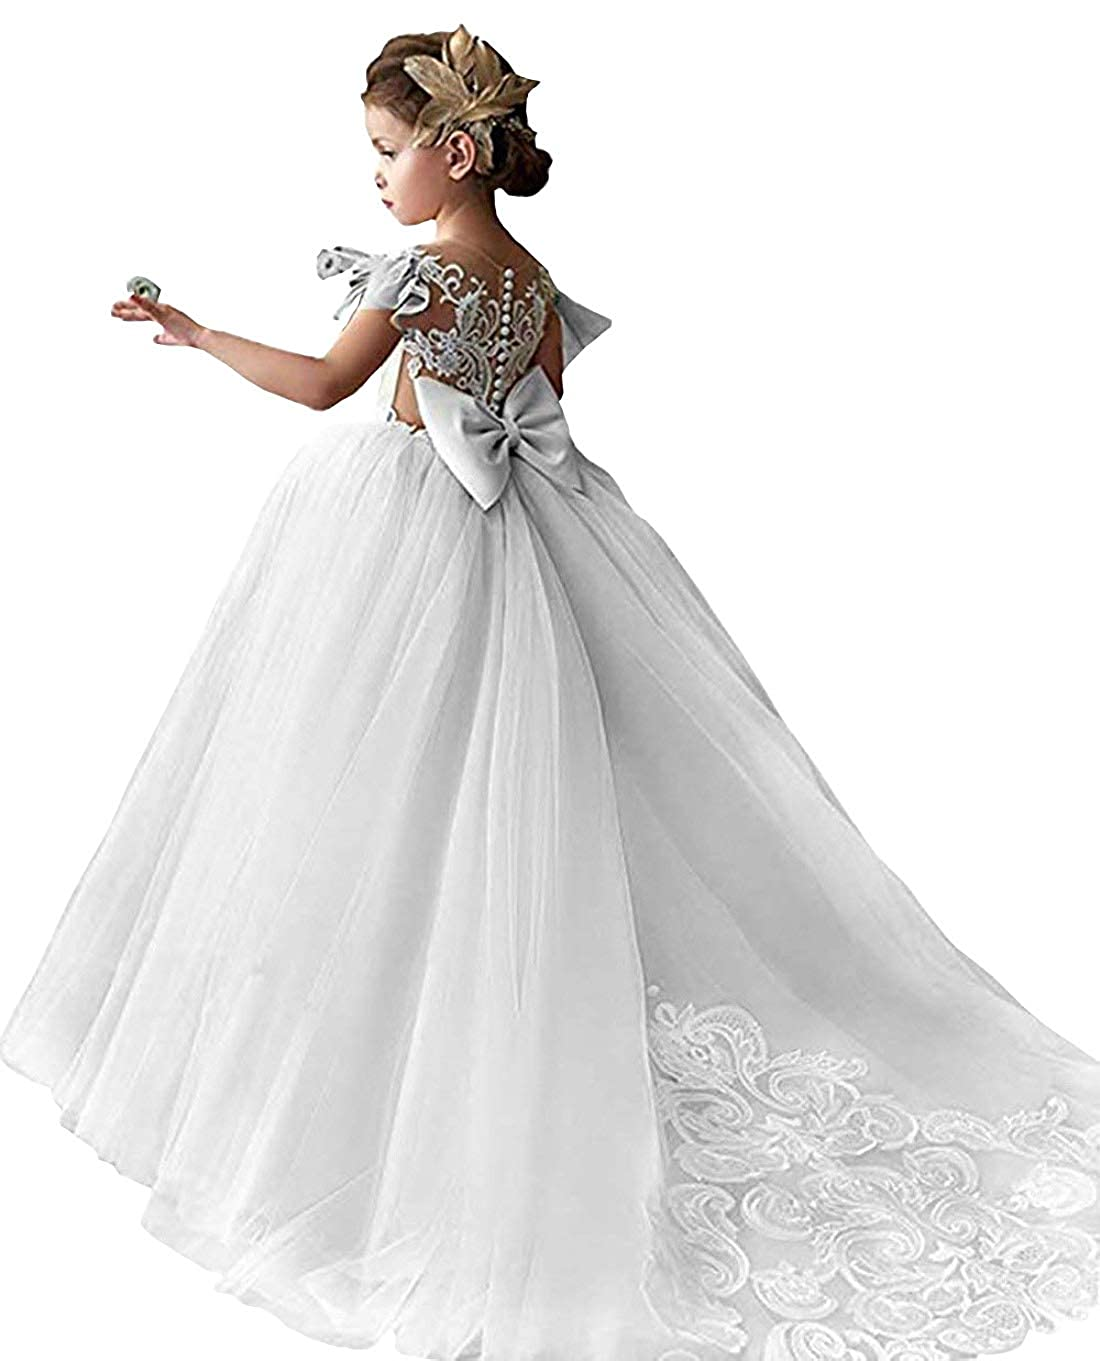 c76bfc17505 Amazon.com  Magicdress Champagne Lace Flower Girl Dresses for Wedding Prom  Party Ball Gowns for Kids  Clothing